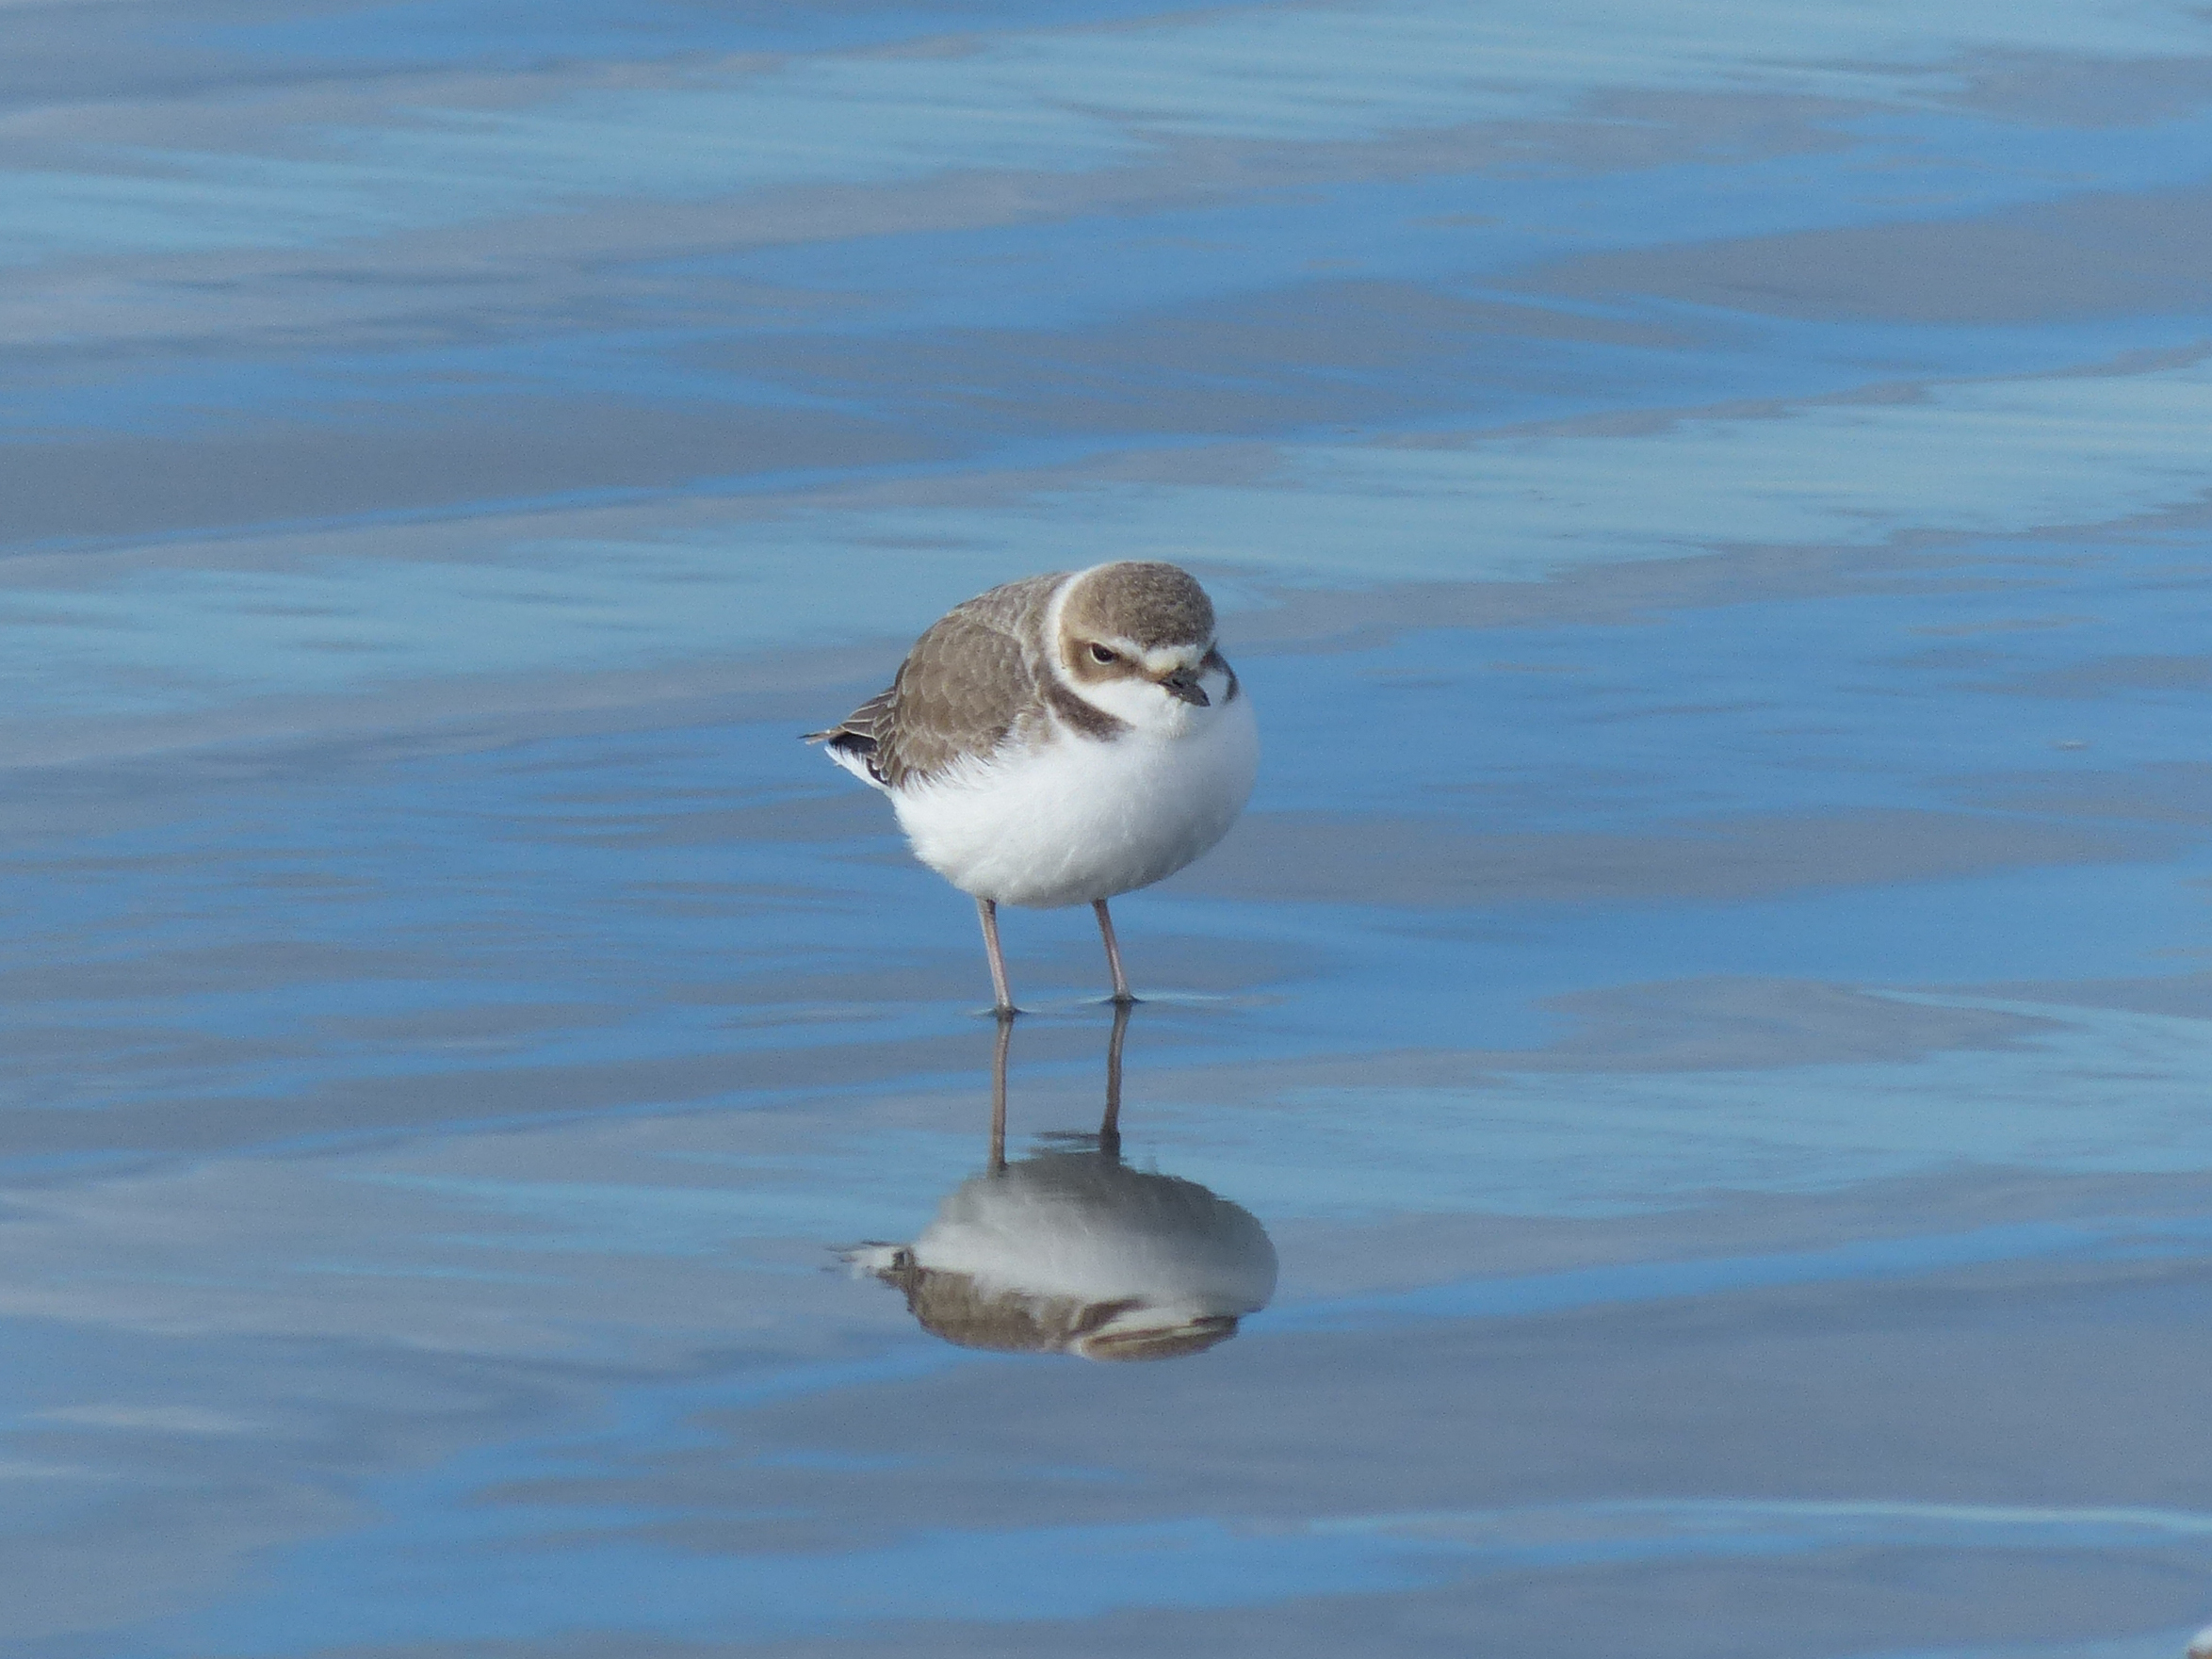 A snowy plover